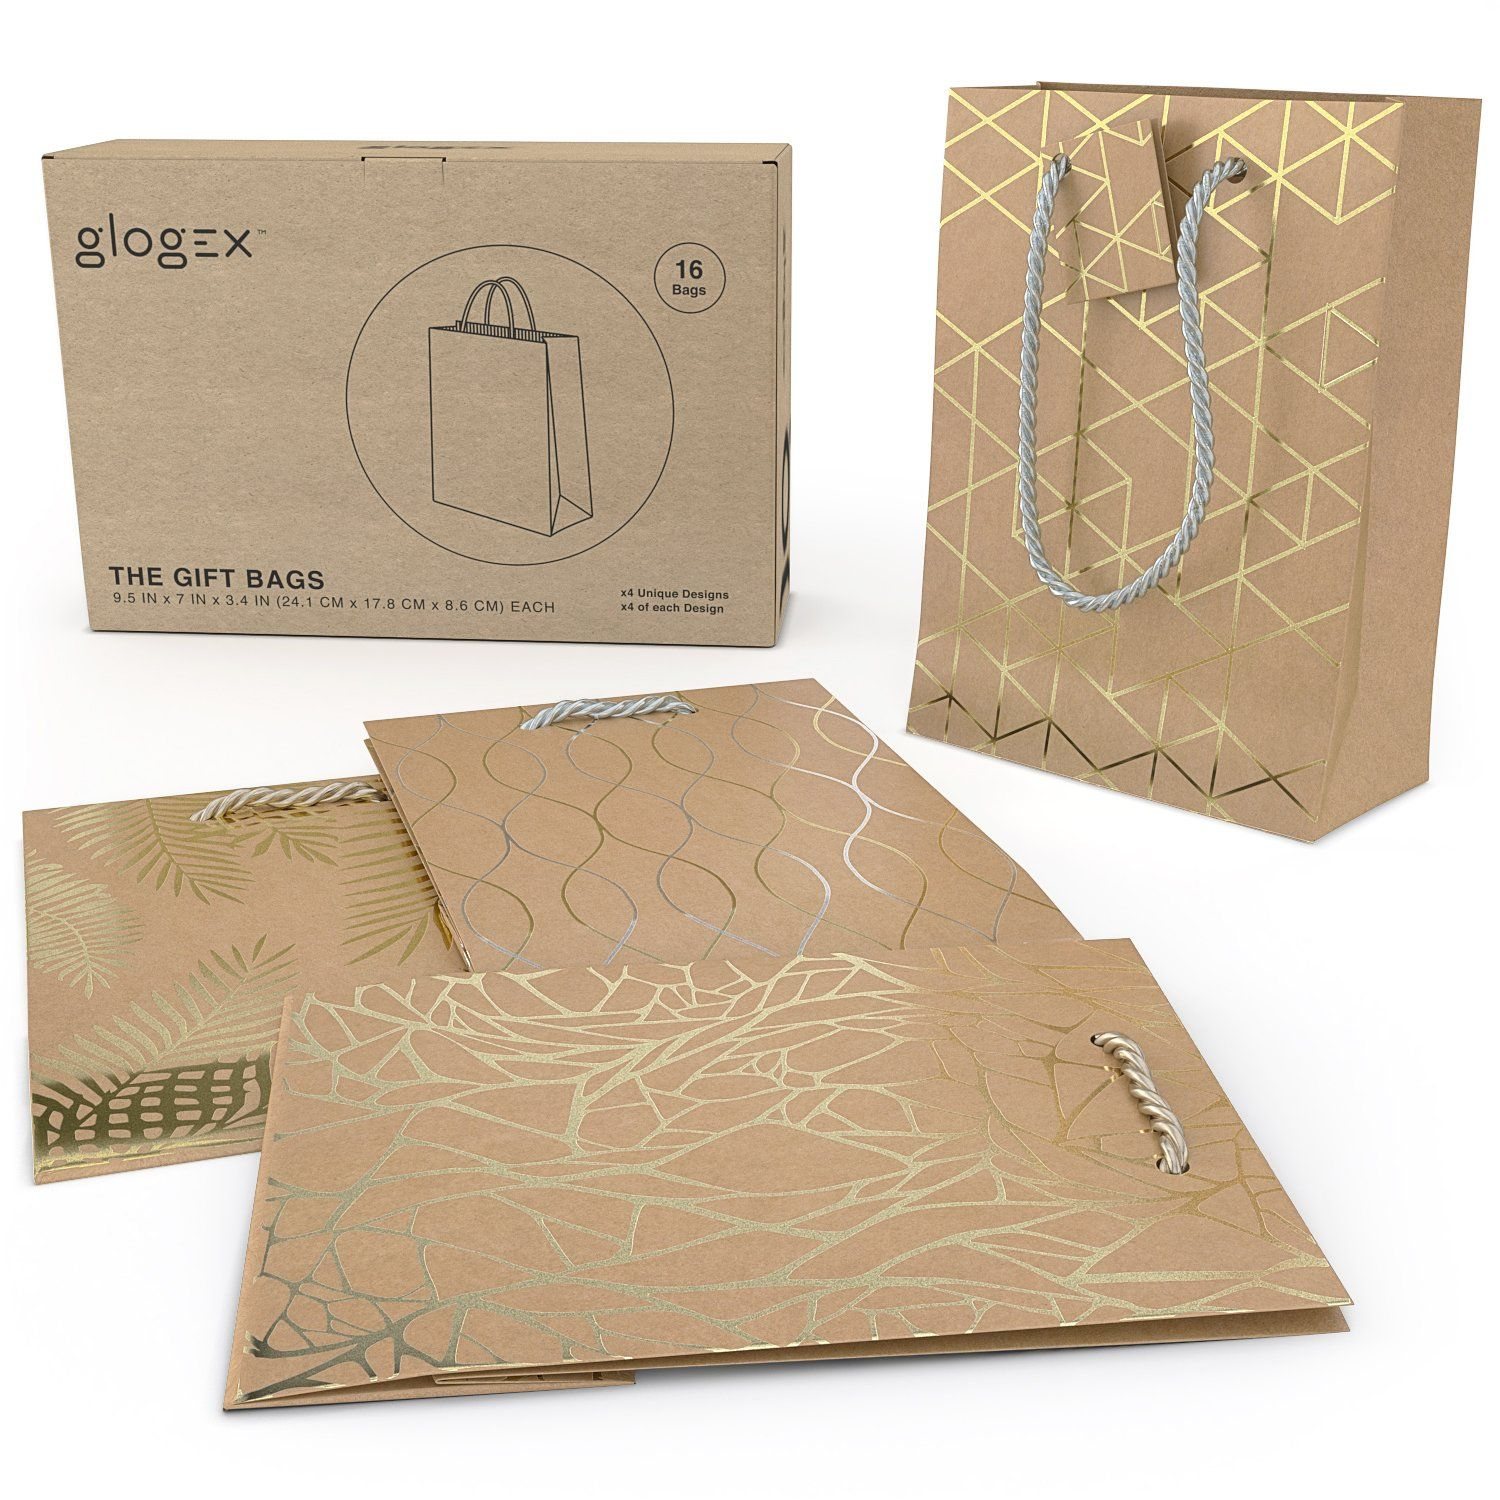 Glogex Gift Bags Kraft Paper Gifts Bag For Birthday Weddings Presents Set Of 16 4 Designs Click On The Image Additional Details